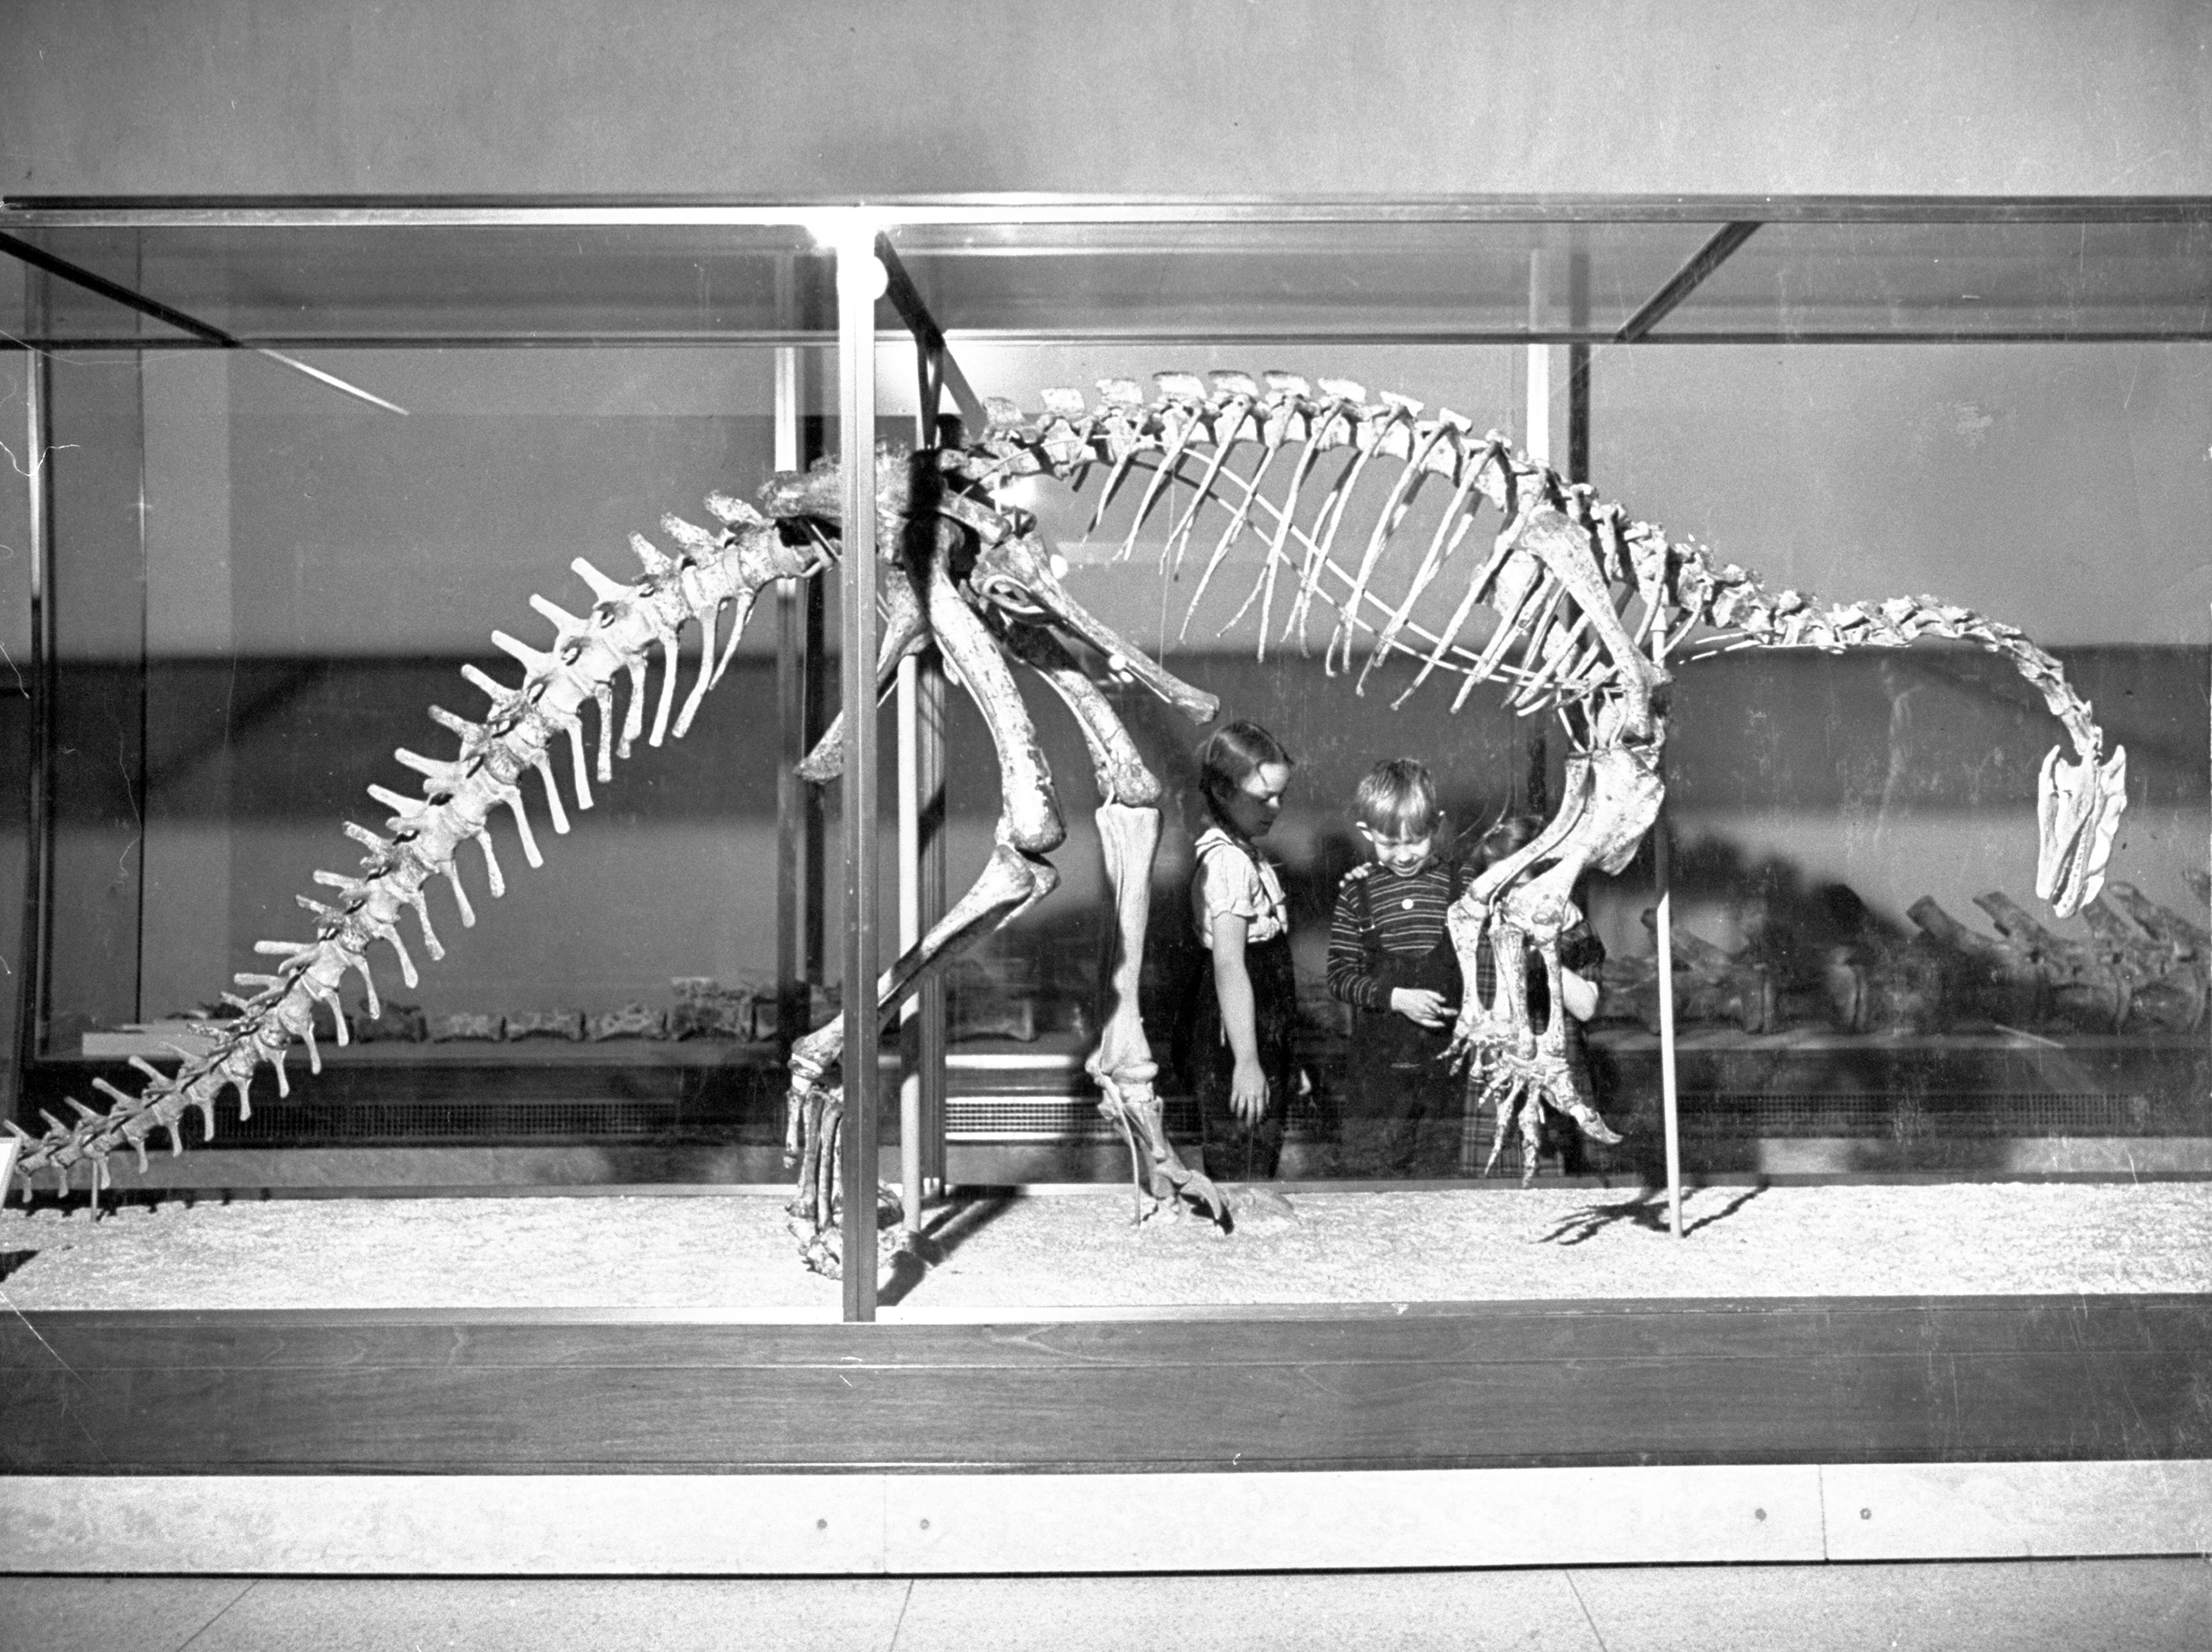 This well-preserved Plateosaurus (oar lizard) was one of the earliest dinosaurs. It stood on its hind legs, had front legs which were terminated by powerful talons.